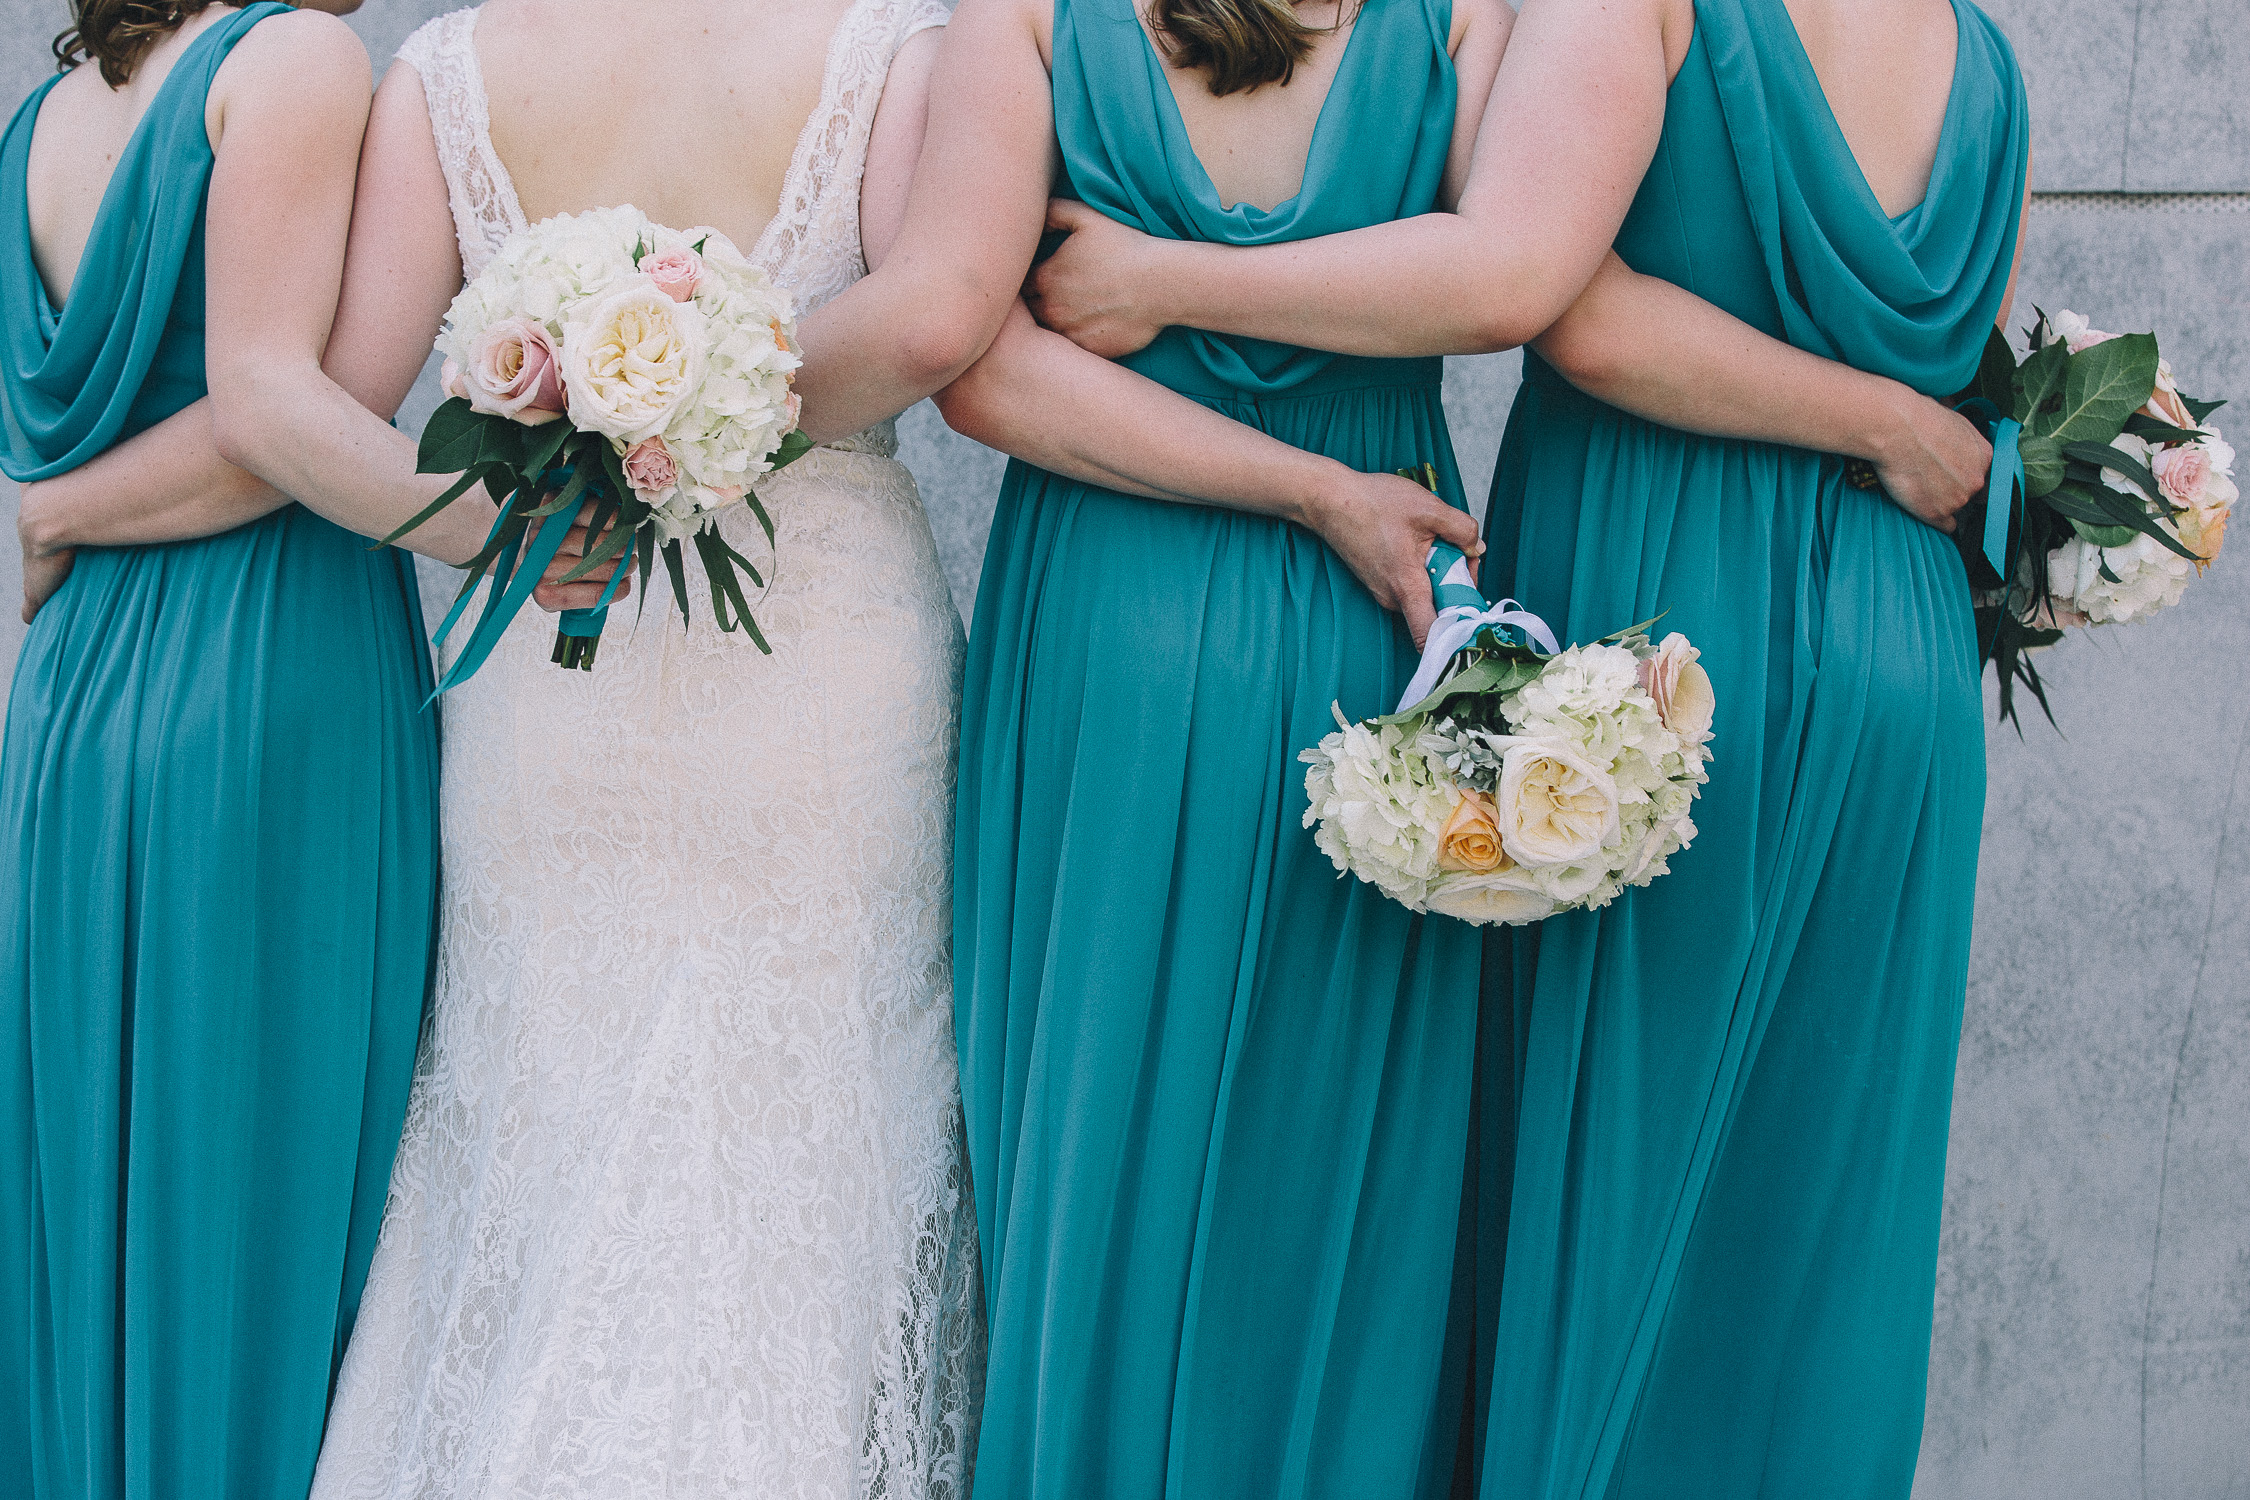 Bride wearing a low-back lace wedding gown links arms around the waists of her bridesmaids wearing teal dresses